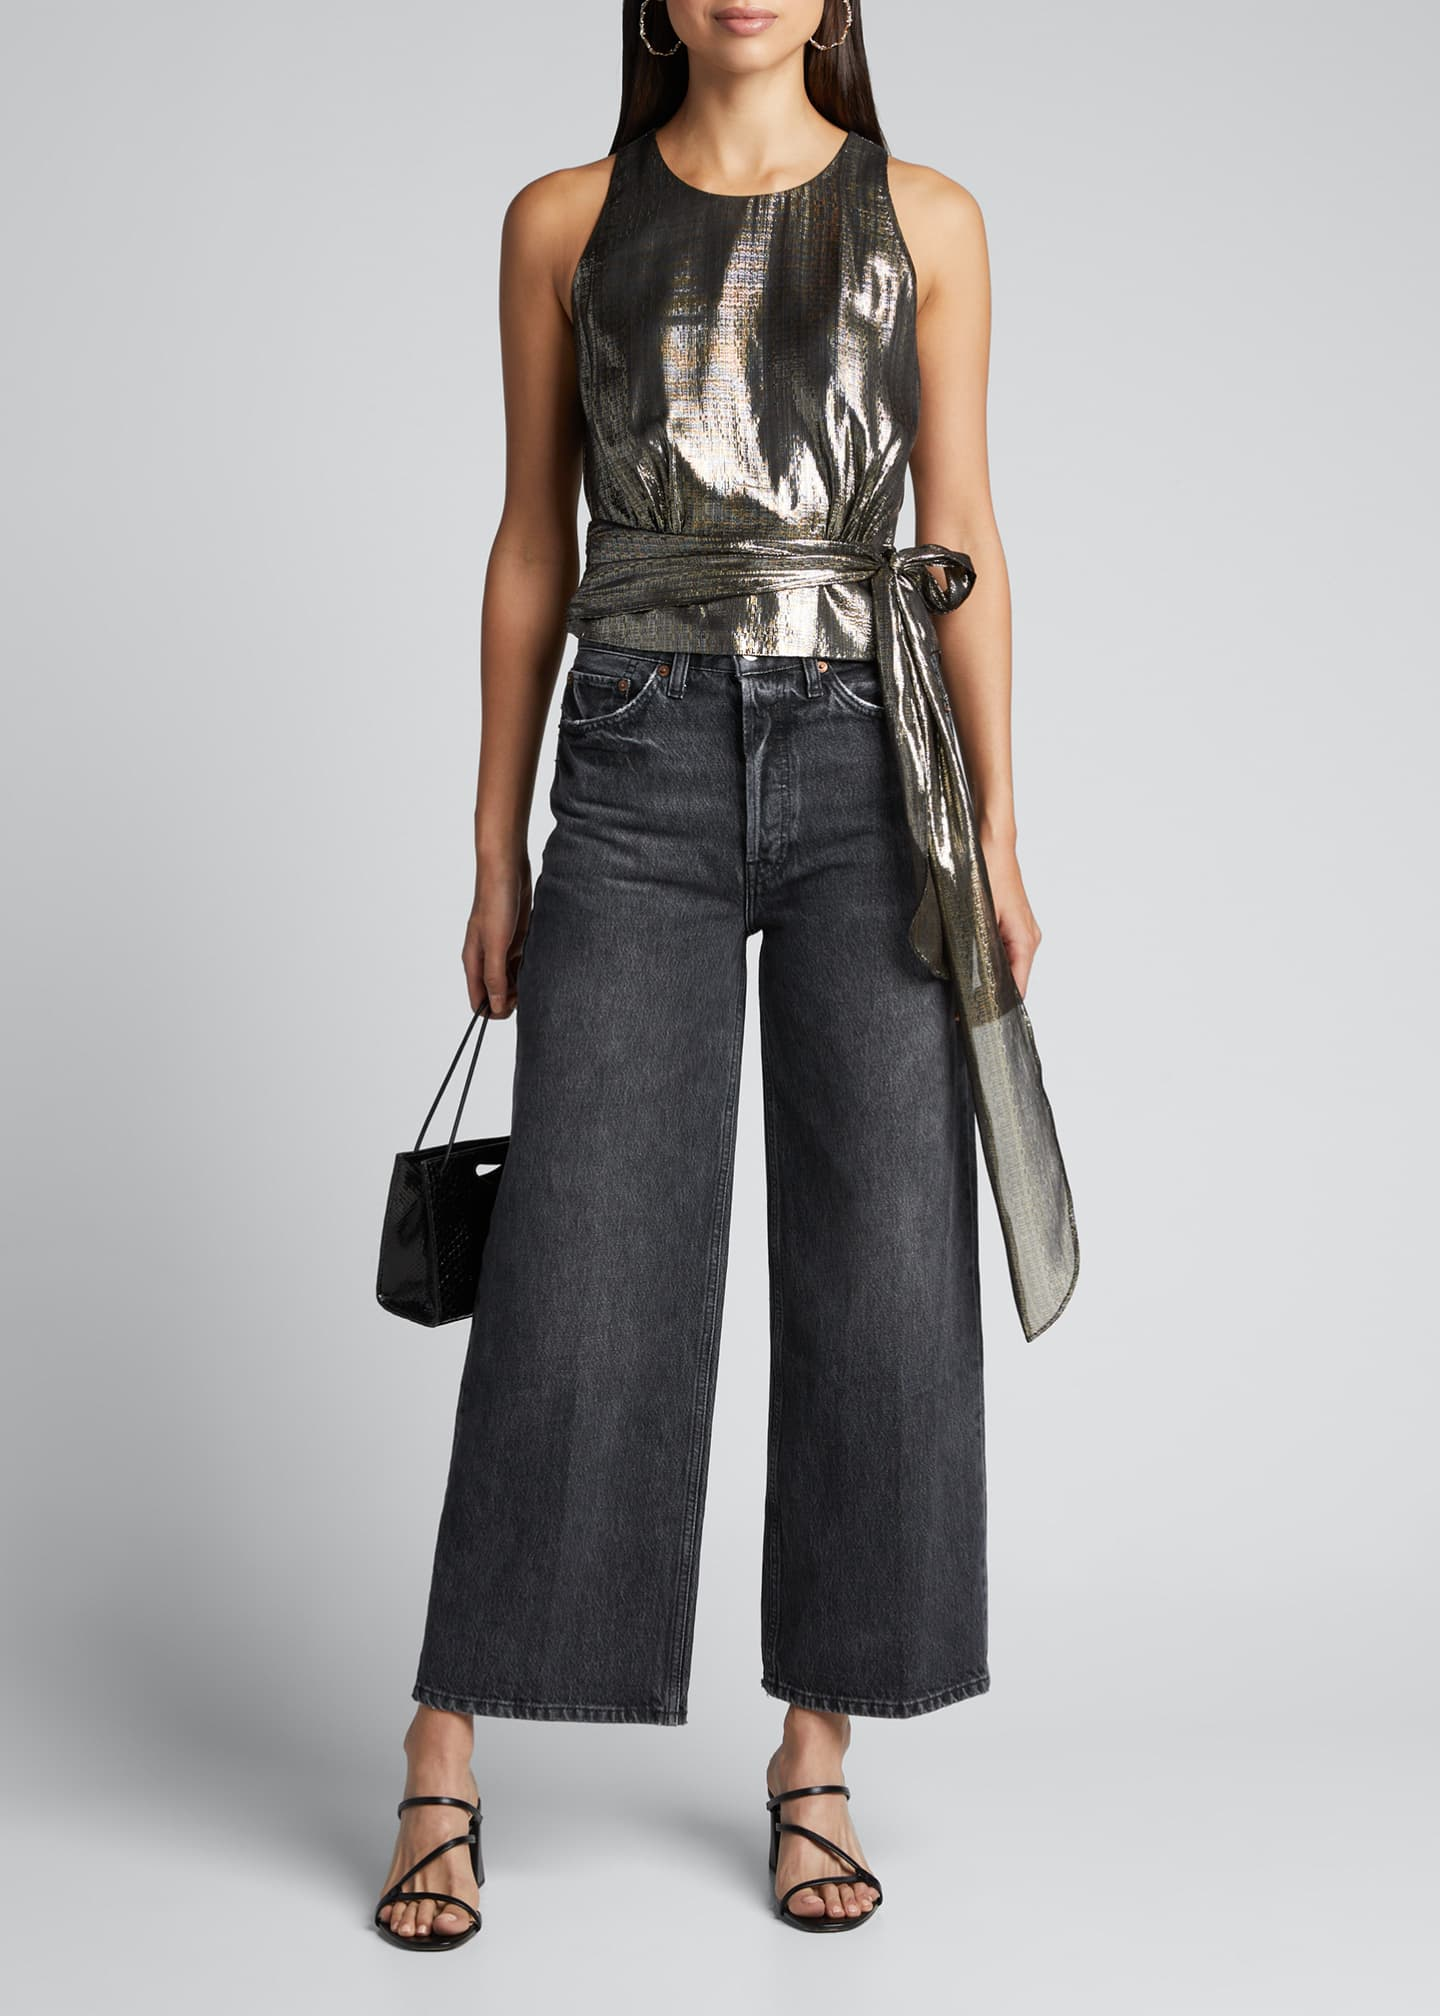 Image 1 of 5: Lauren Cropped Stretch Metallic Chiffon Top